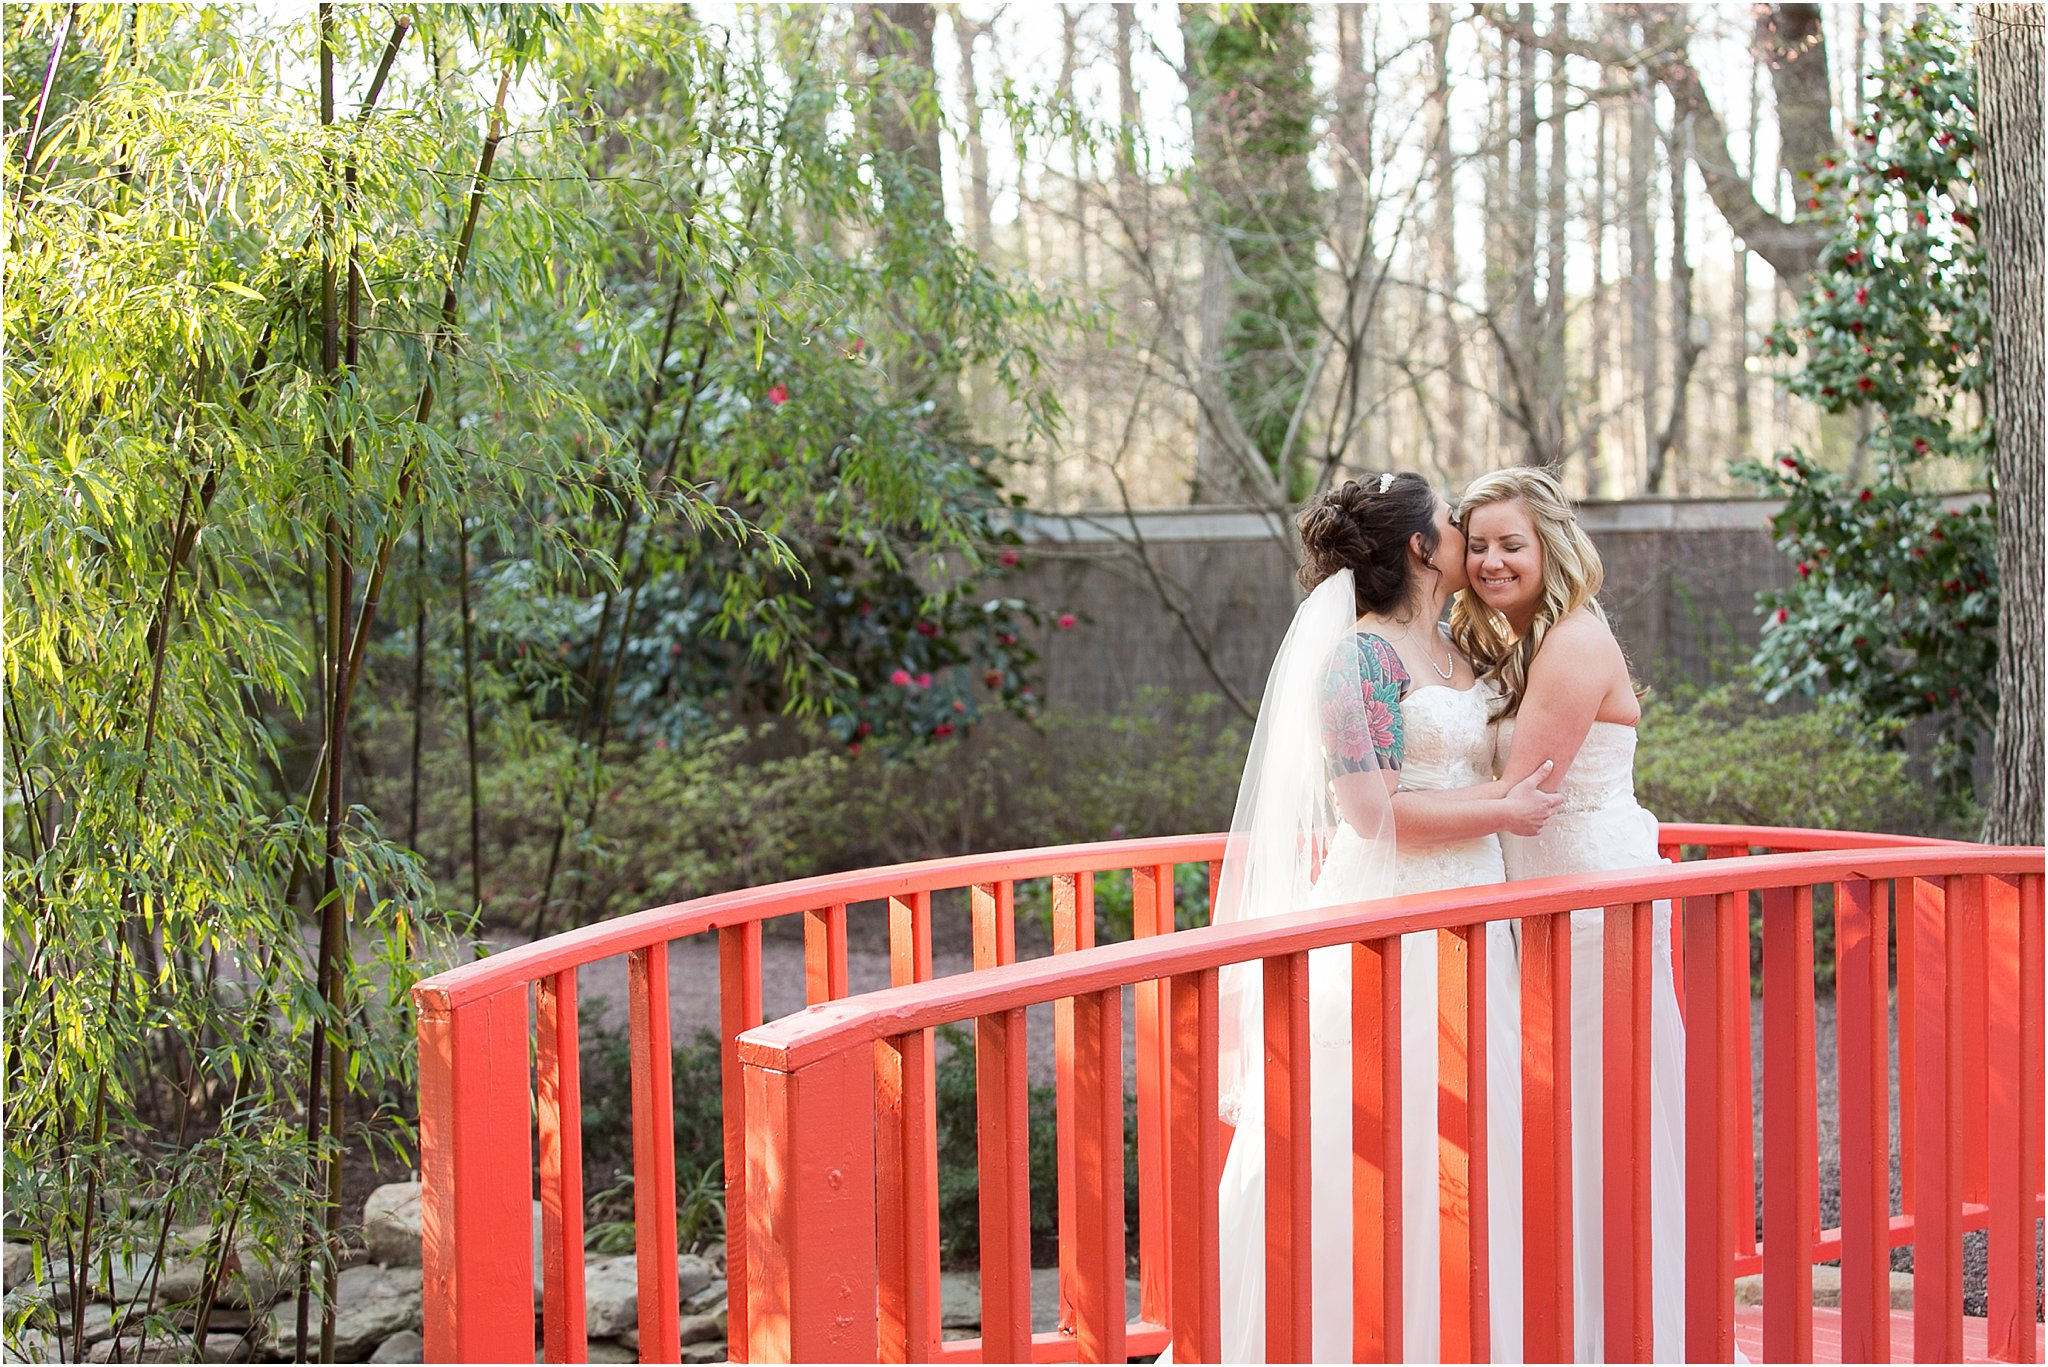 jessica_ryan_photography_redwingpark_wedding_virginia_beach_hampton_roads_1255